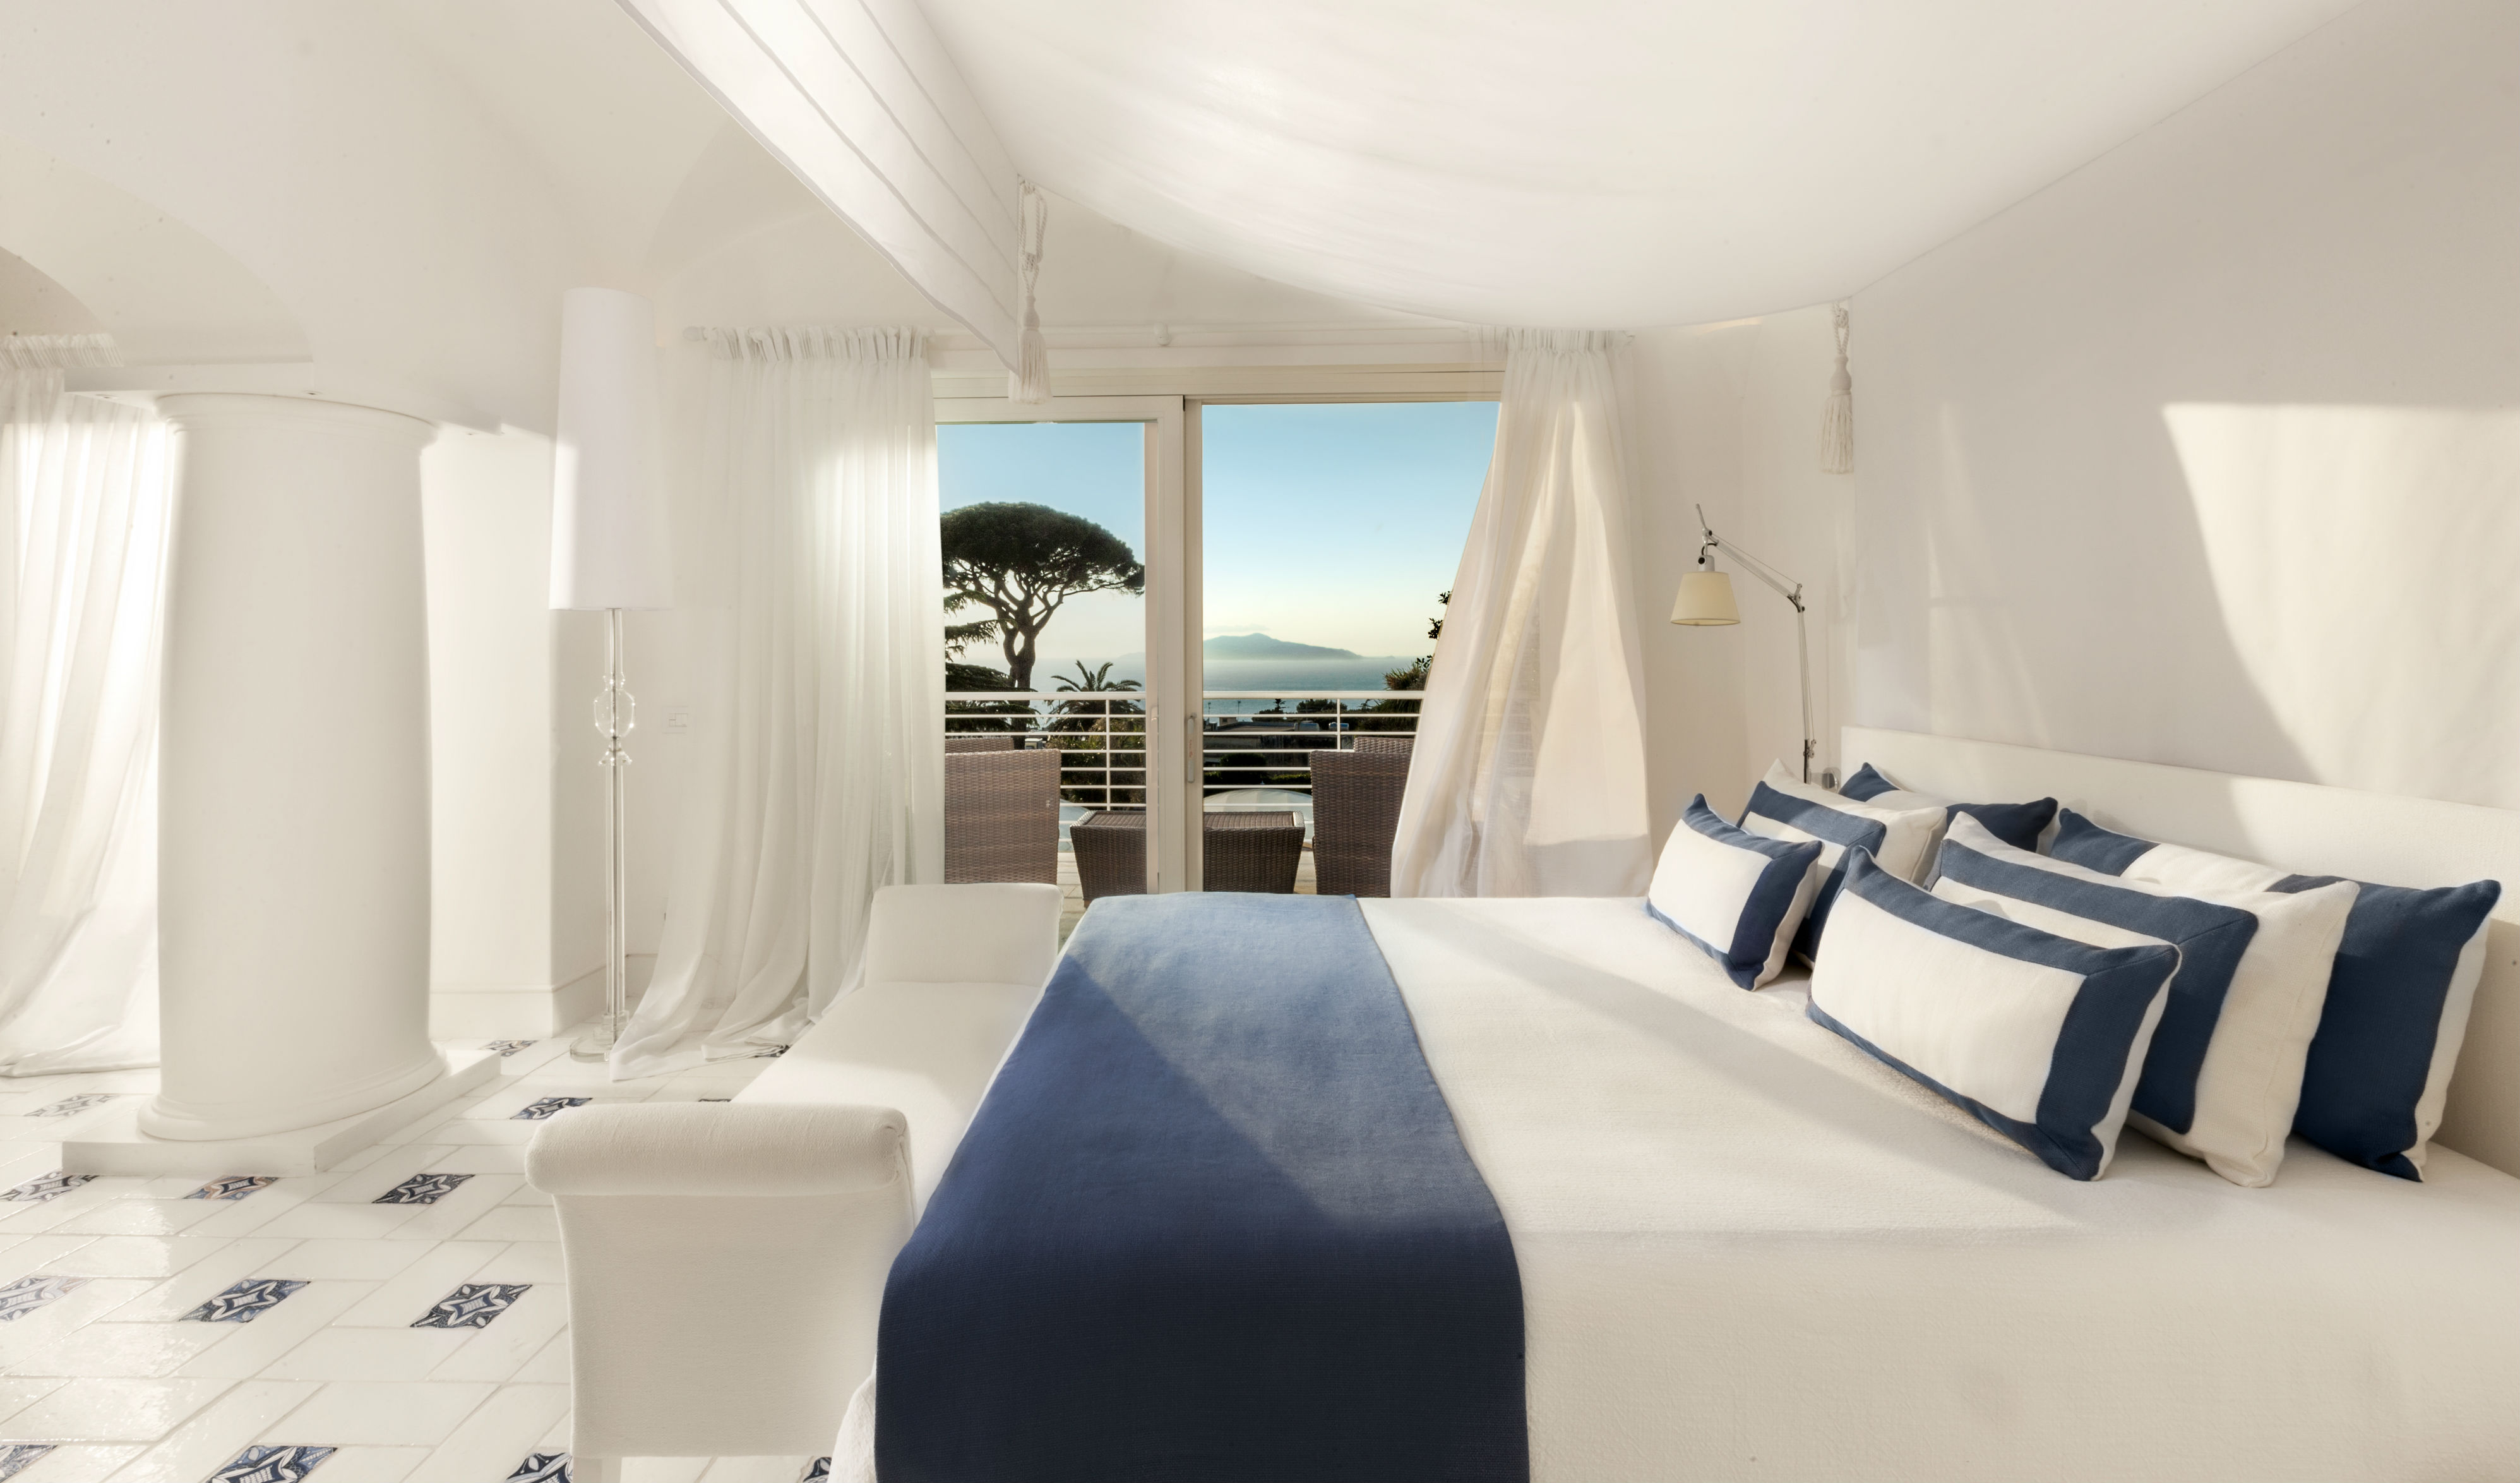 Room in luxury resort in Italy